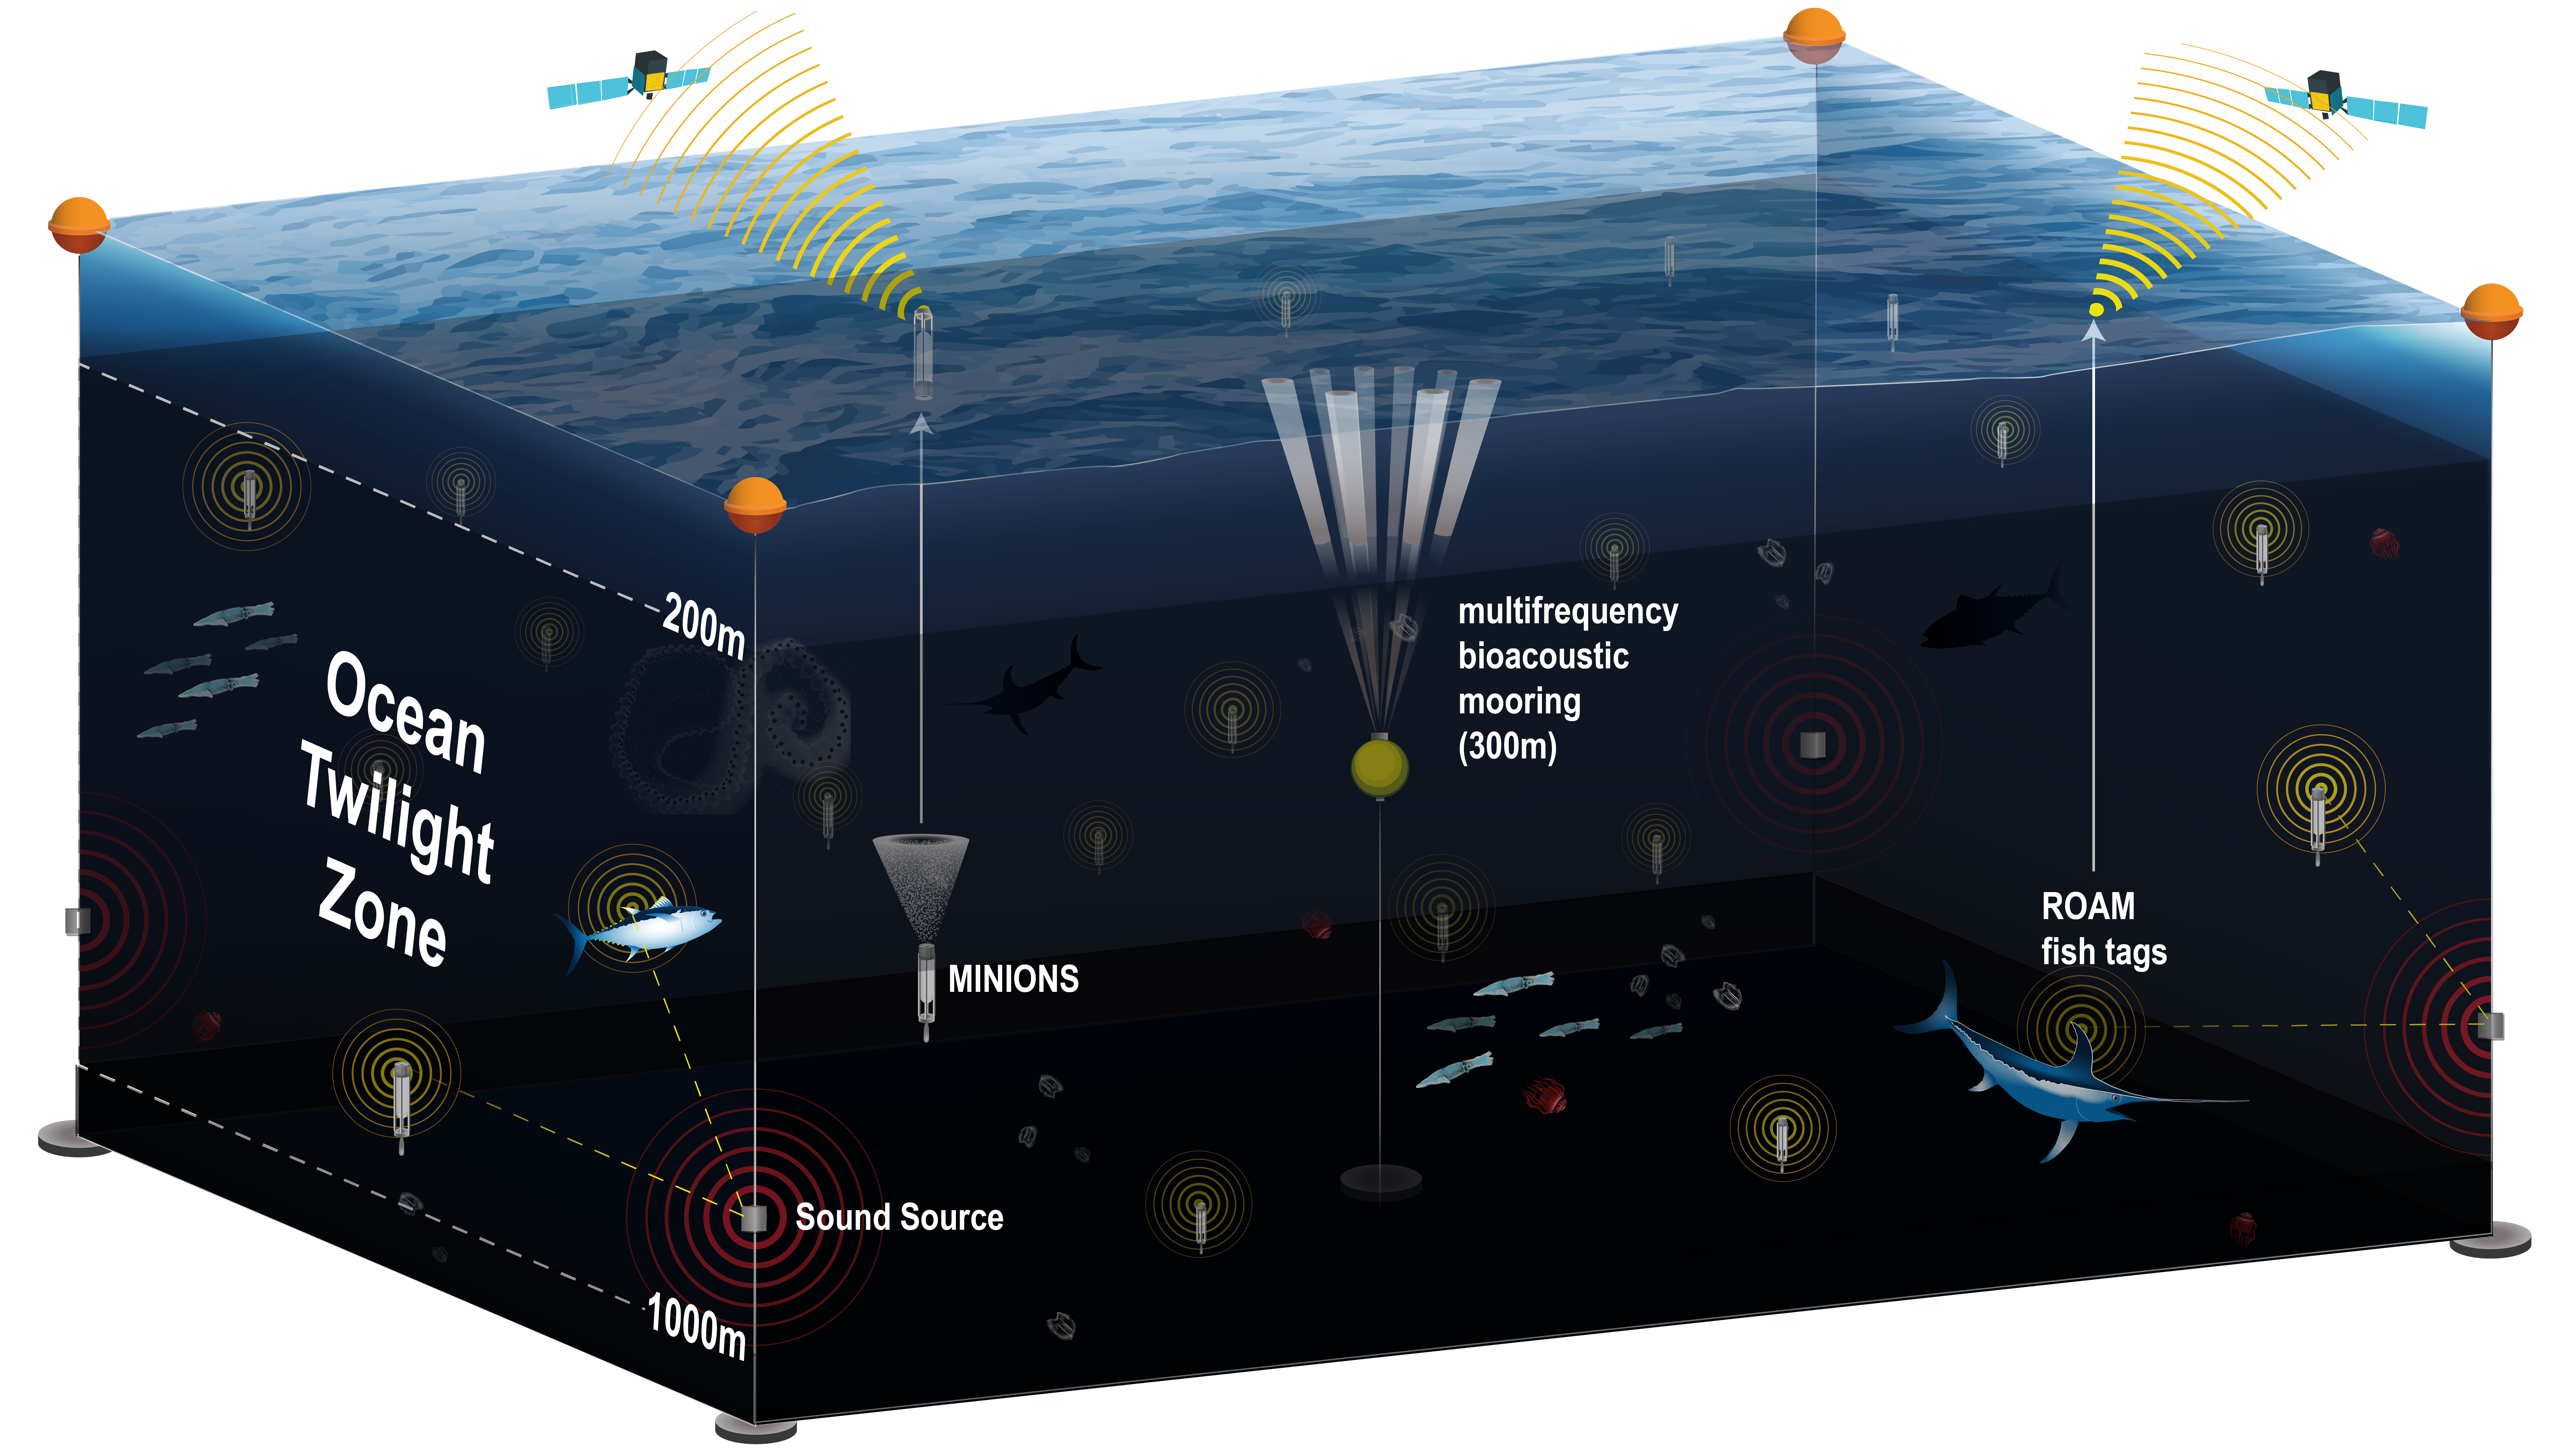 New observation network will provide unprecedented, long-term view of life in the ocean twilight zone